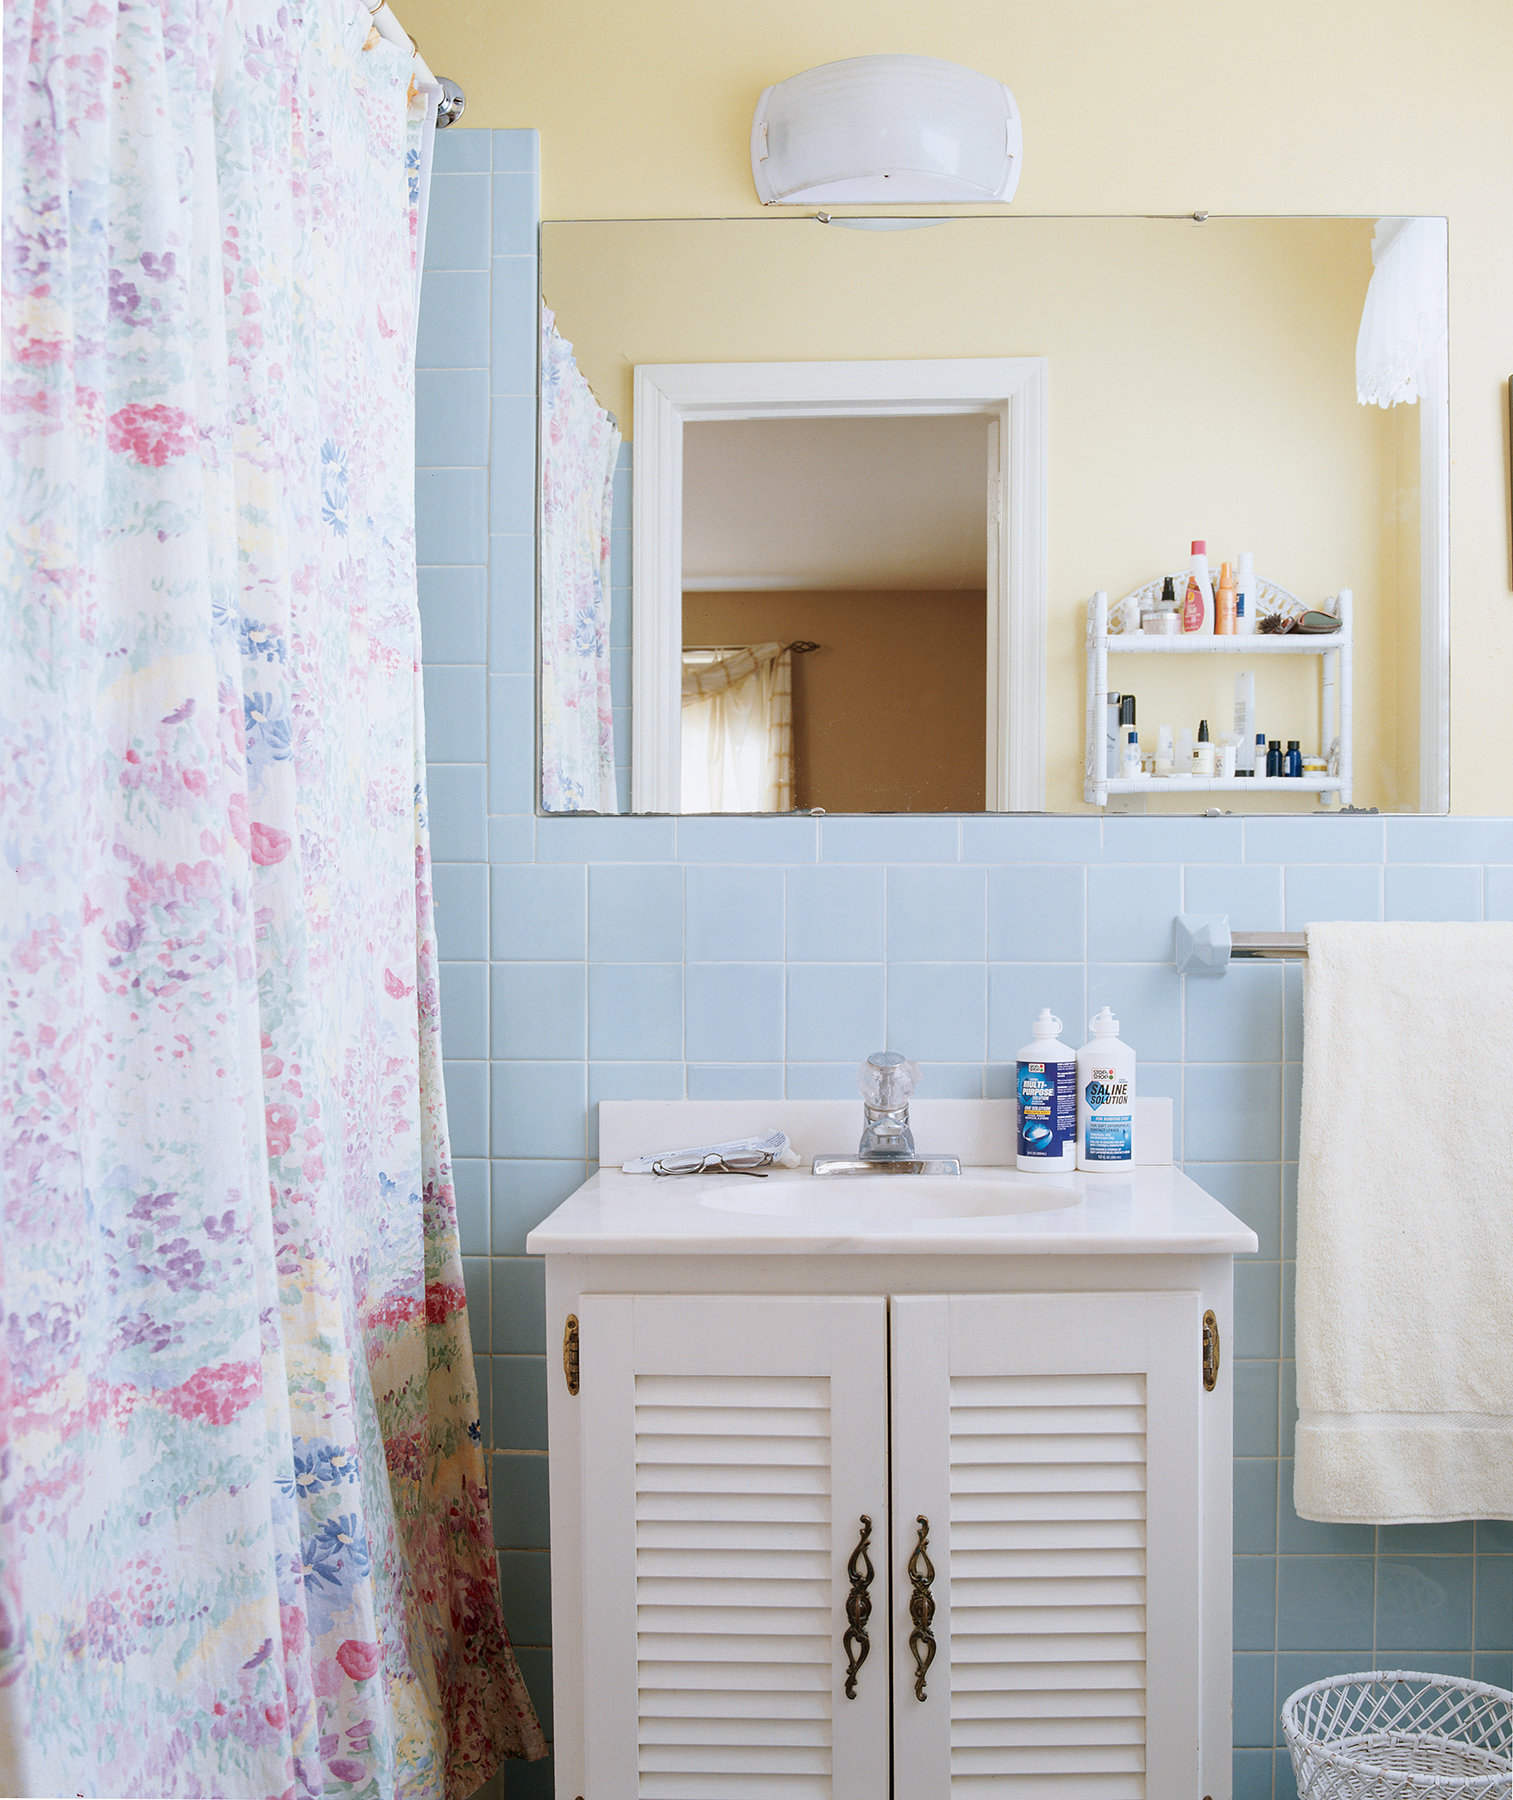 Cleaning bathroom walls before painting - How To Clean Bathroom Ceiling Before Painting Tile Walls Ceiling Deep Clean Your Bathroom In